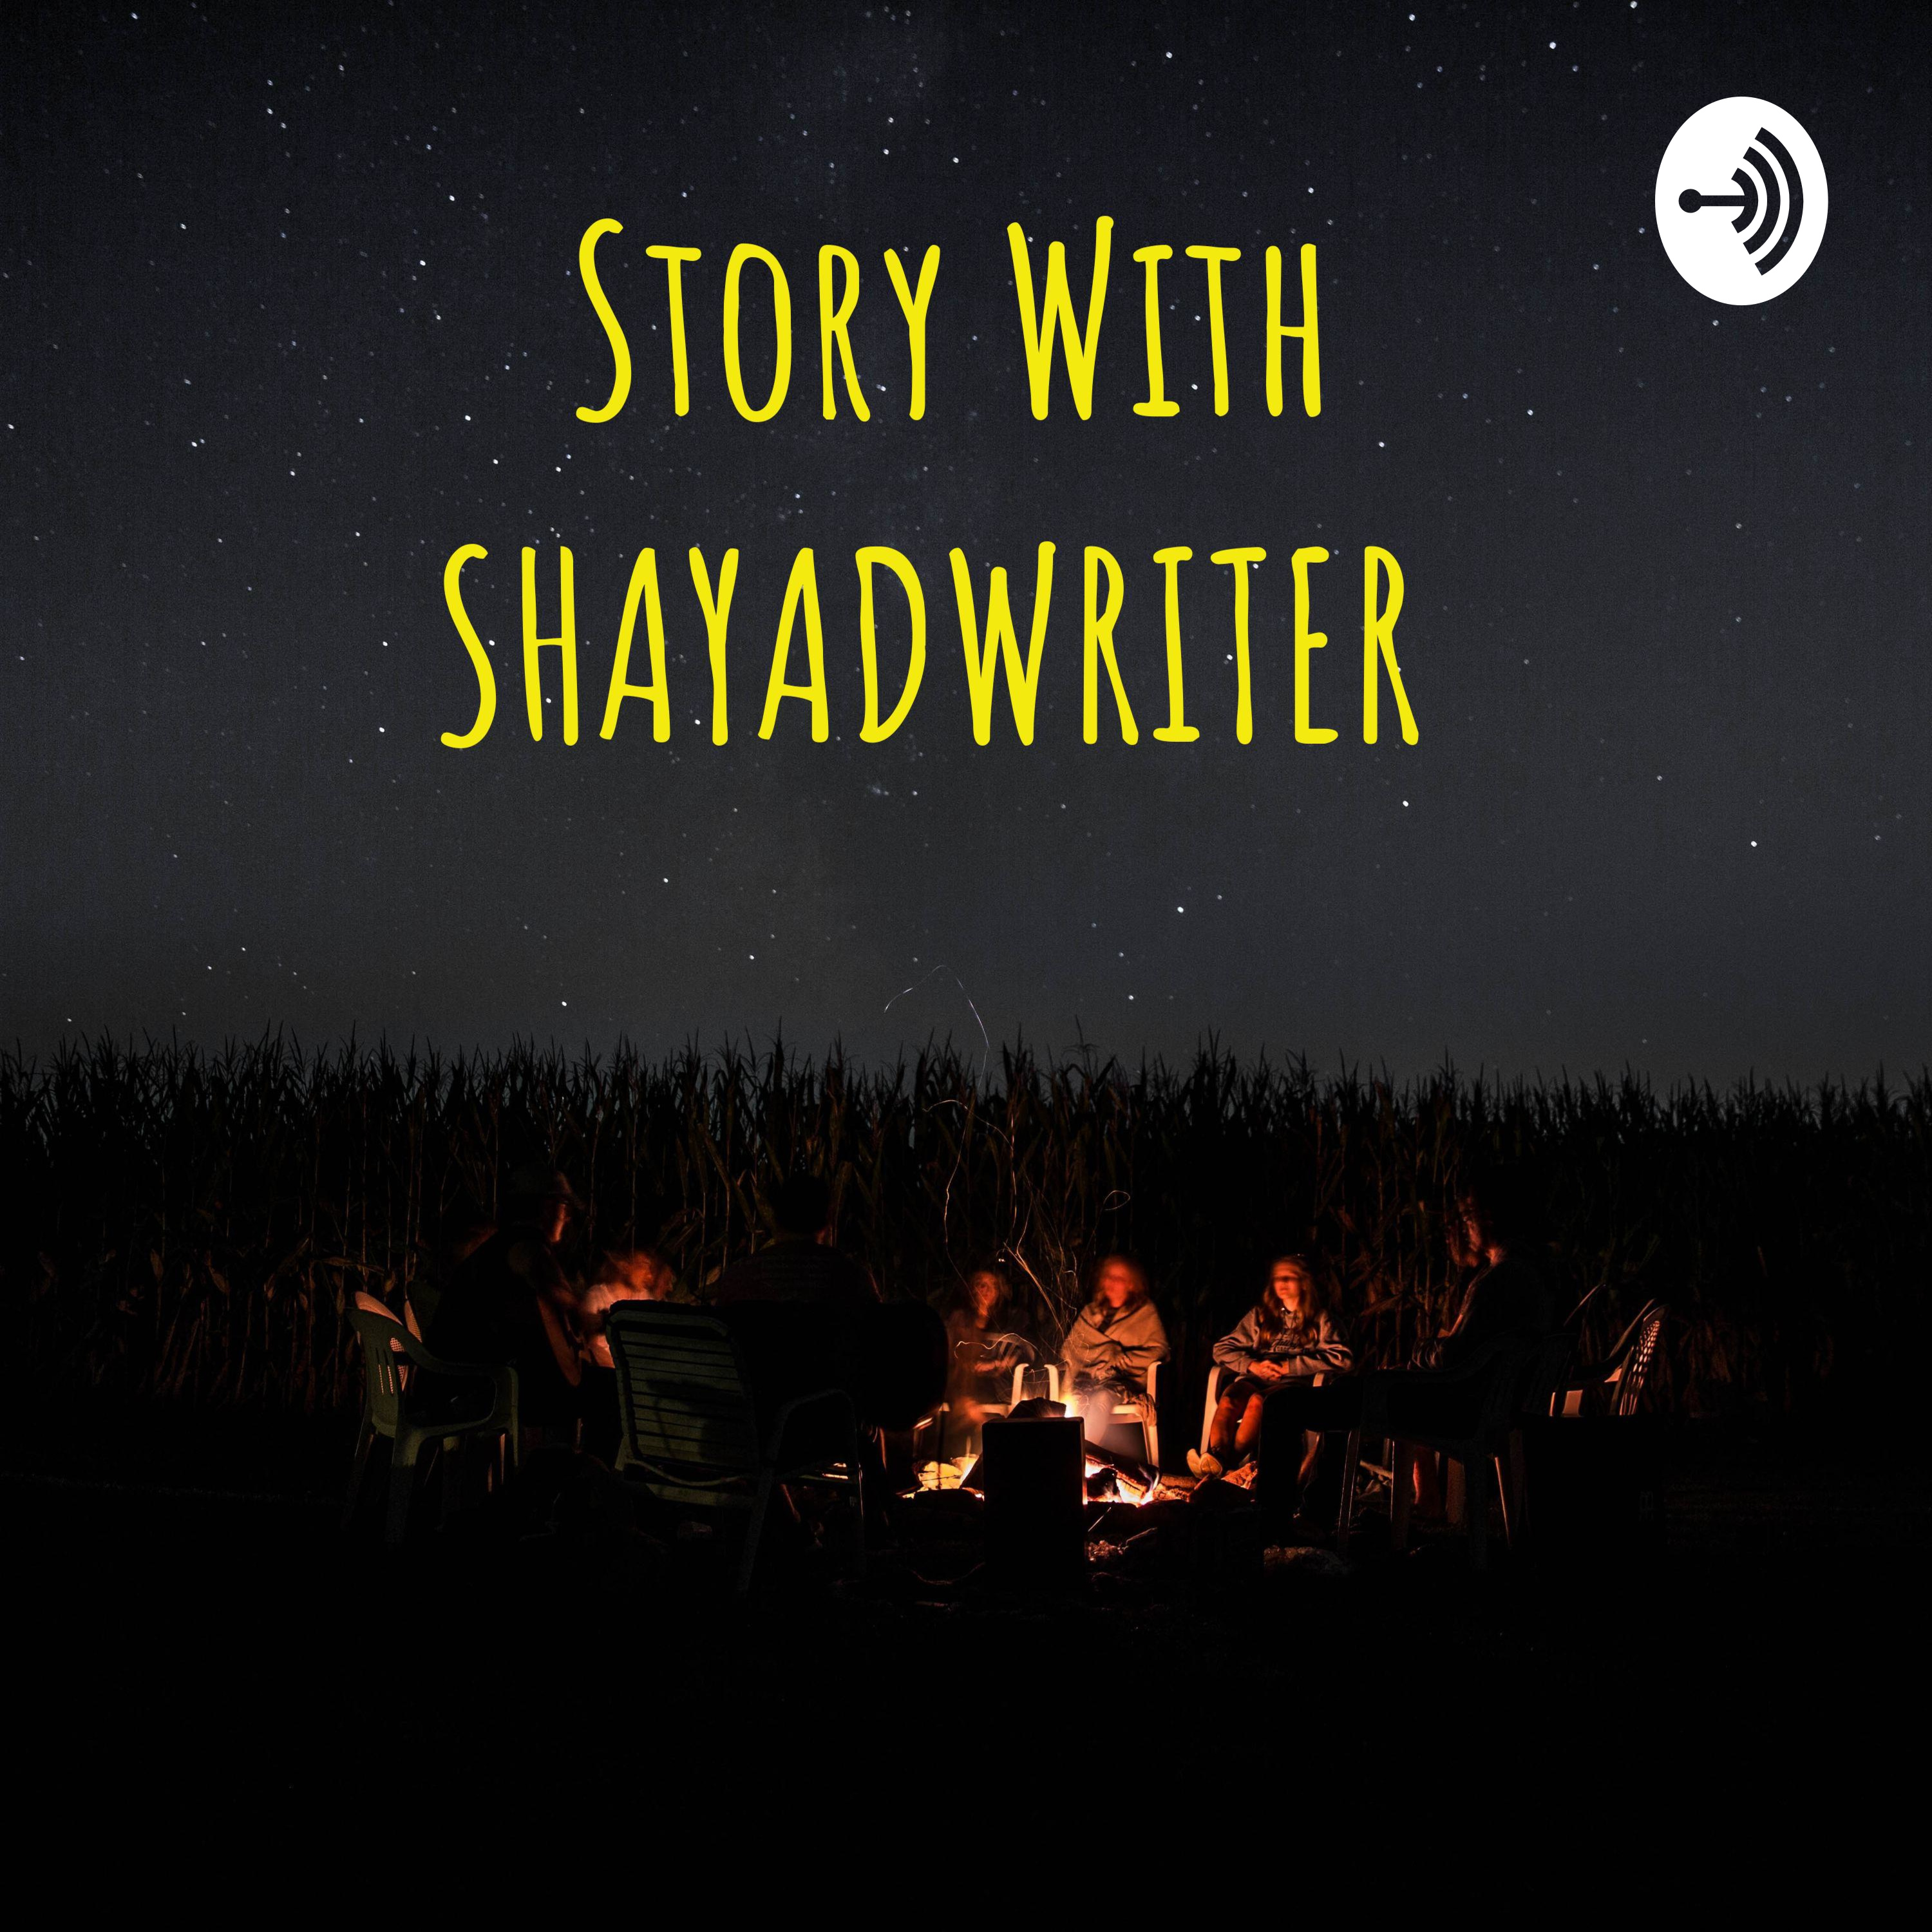 Story With SHAYADWRITER (Trailer)